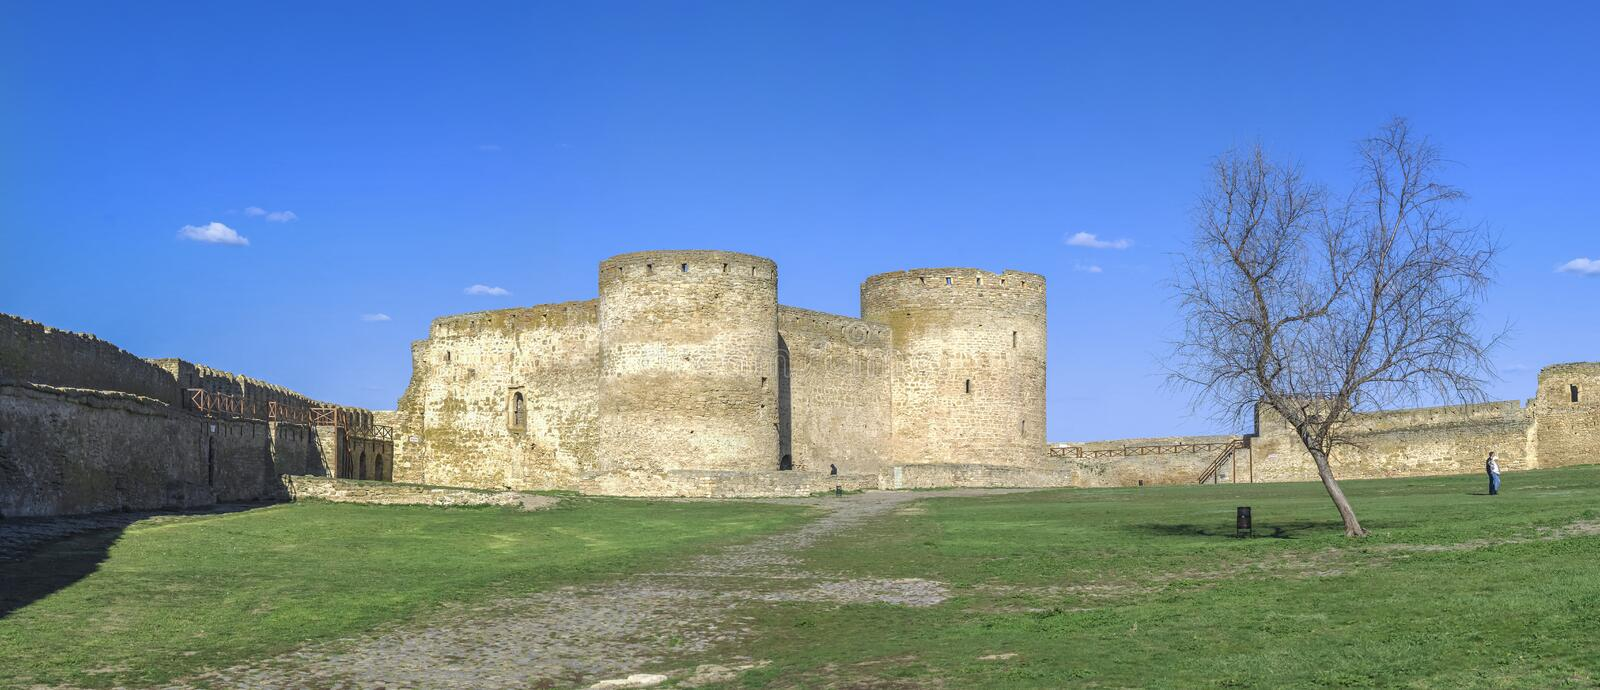 Fortress Walls of the Akkerman Citadel in Ukraine royalty free stock images